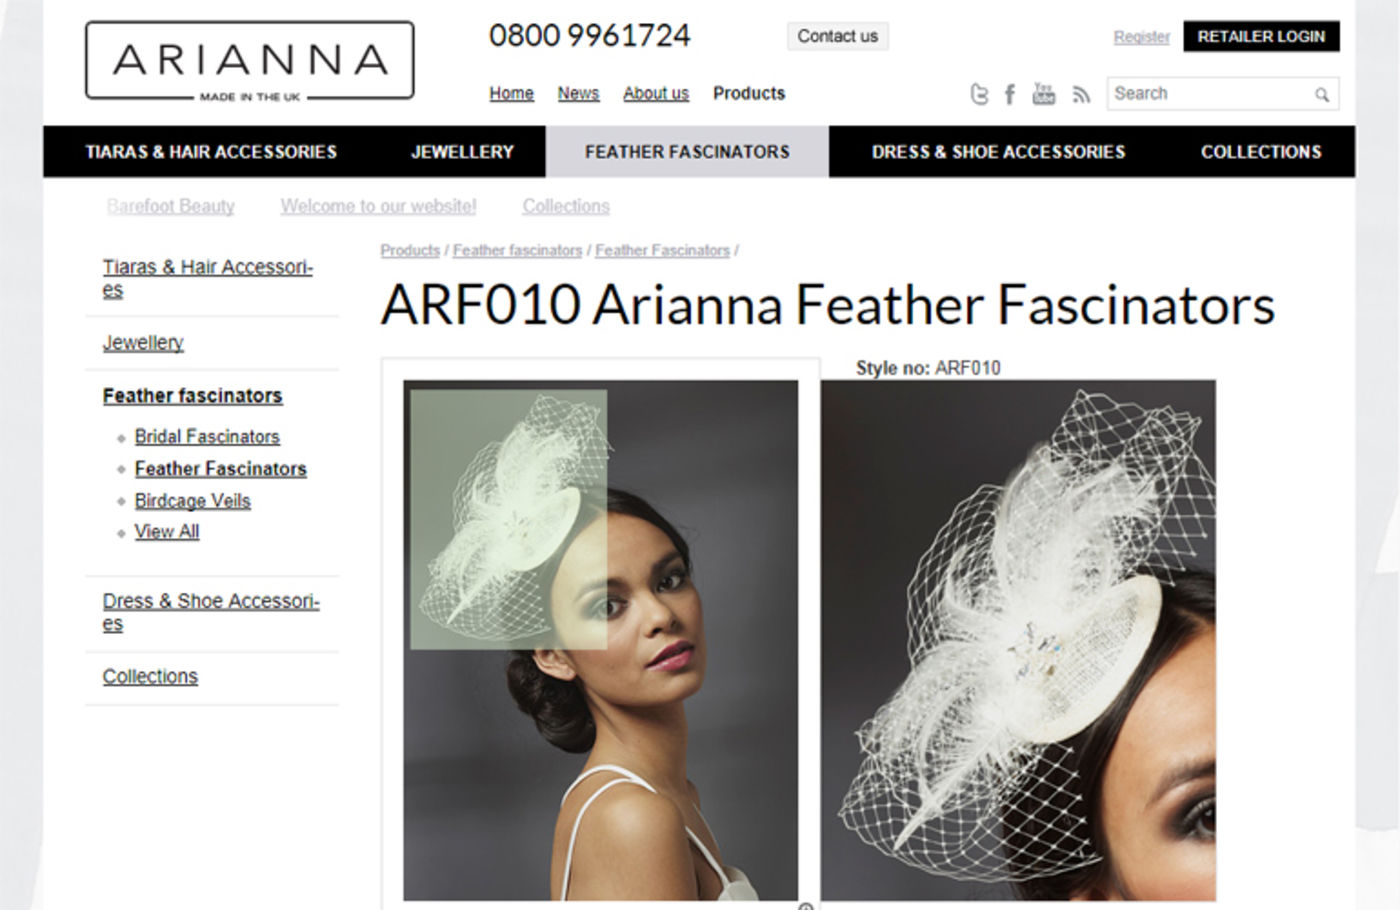 Arianna Product Large View